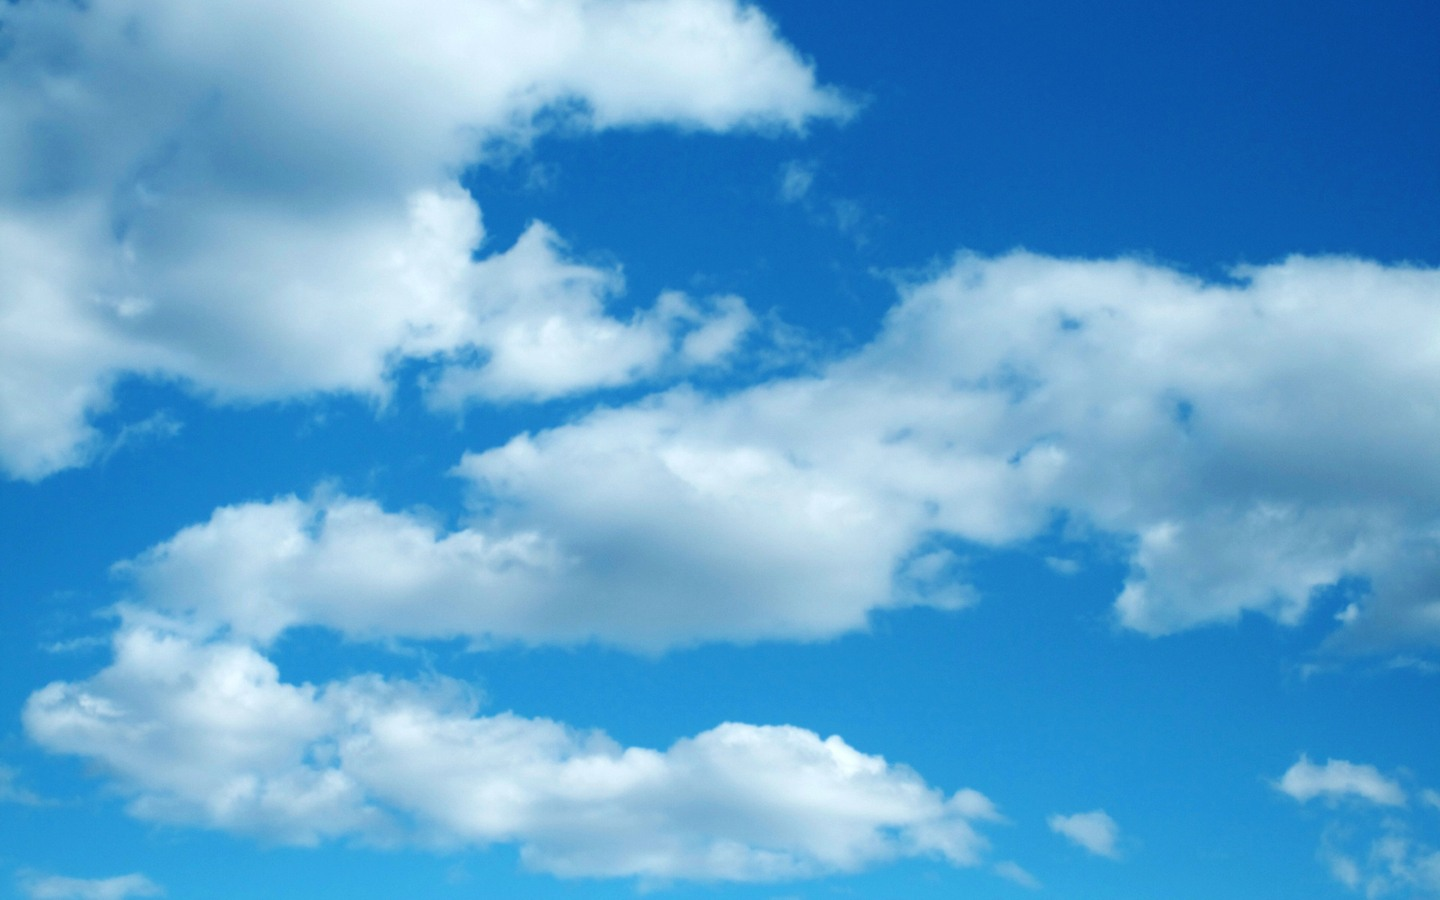 Sky Cloud Wallpapers Hd: Wallpaper Birds And Clouds